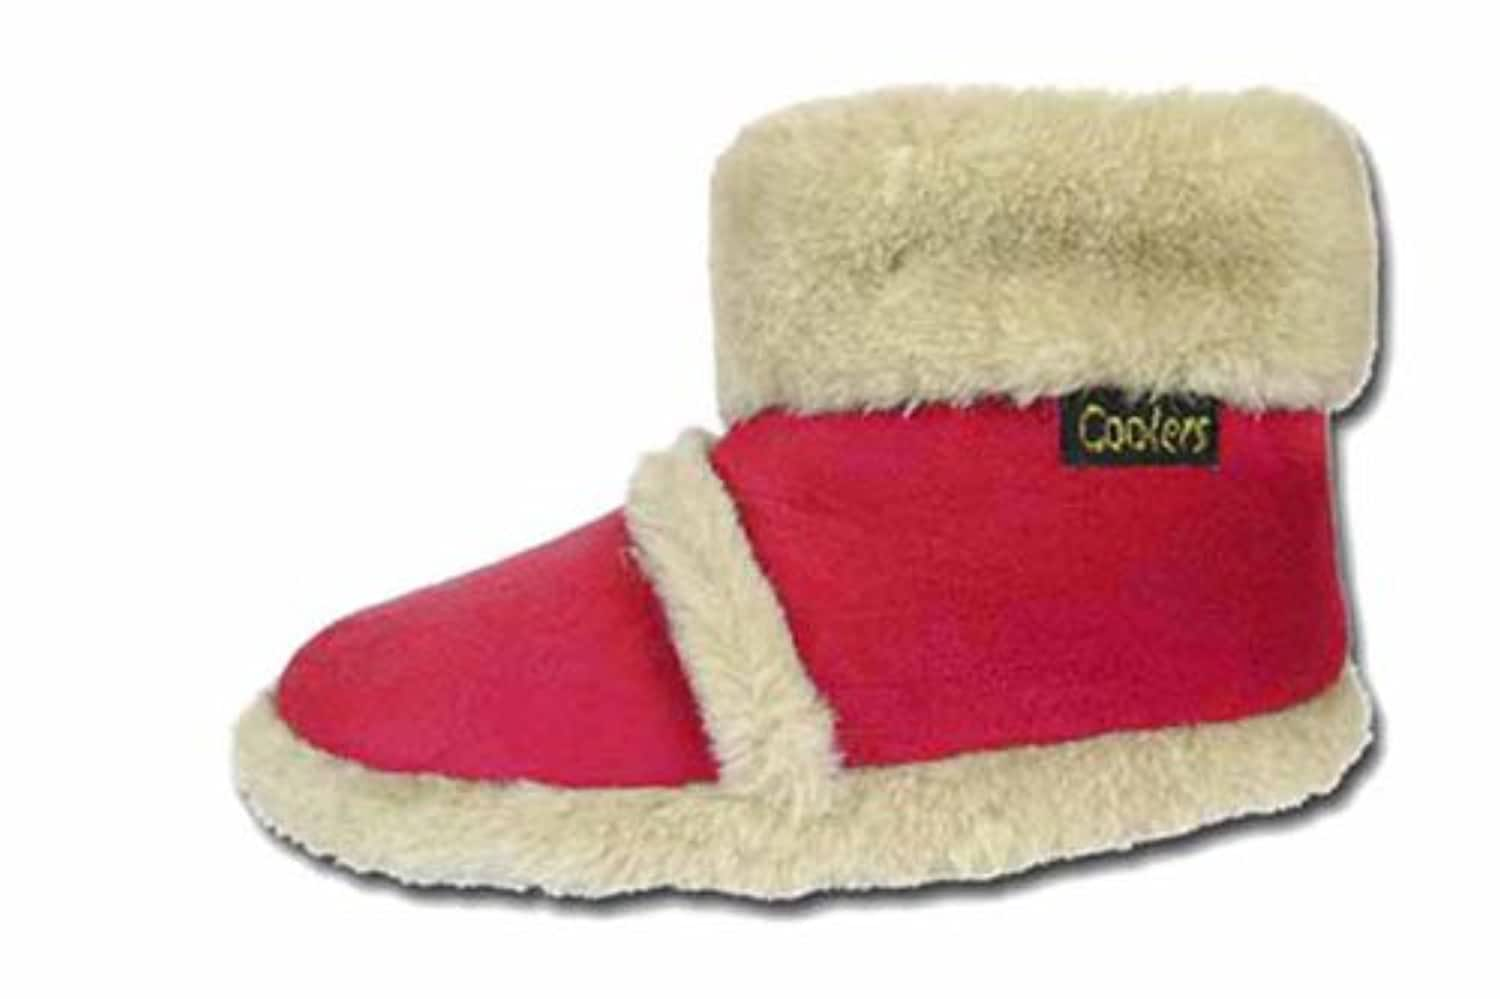 Size 10 Coolers Kid's Ad3174k Textile Slippers